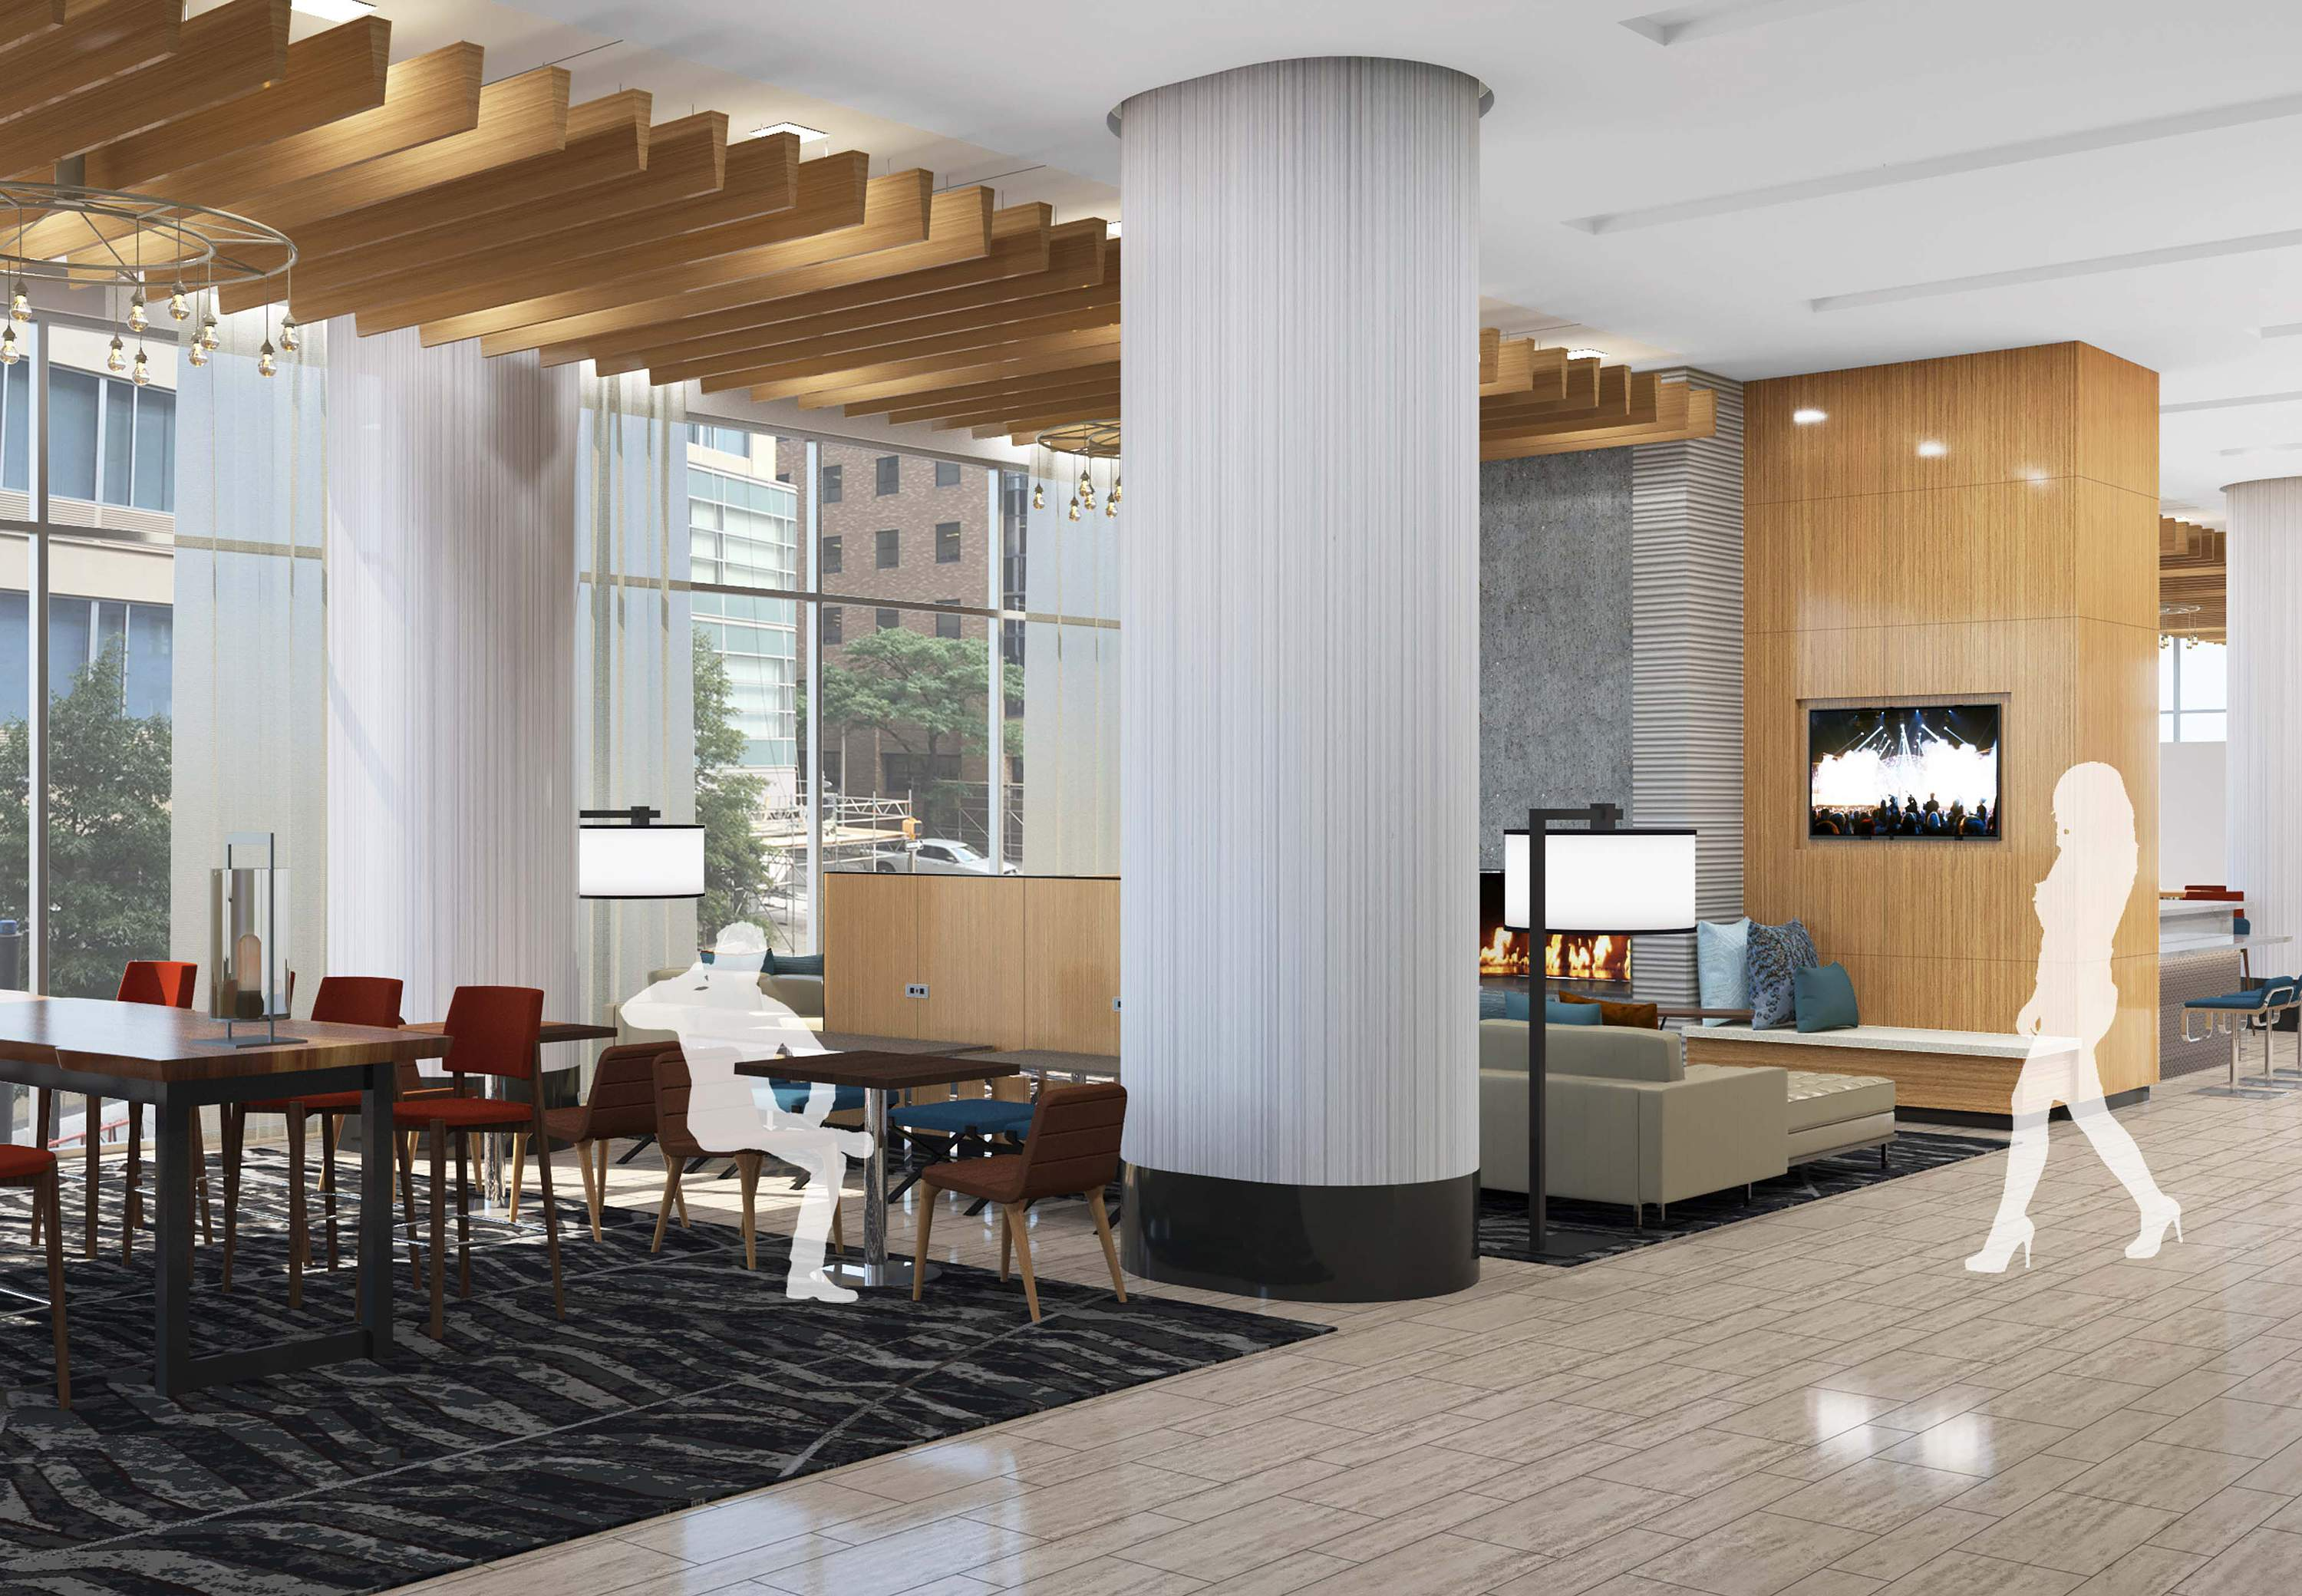 Residence Inn by Marriott Baltimore at The Johns Hopkins Medical Campus image 3